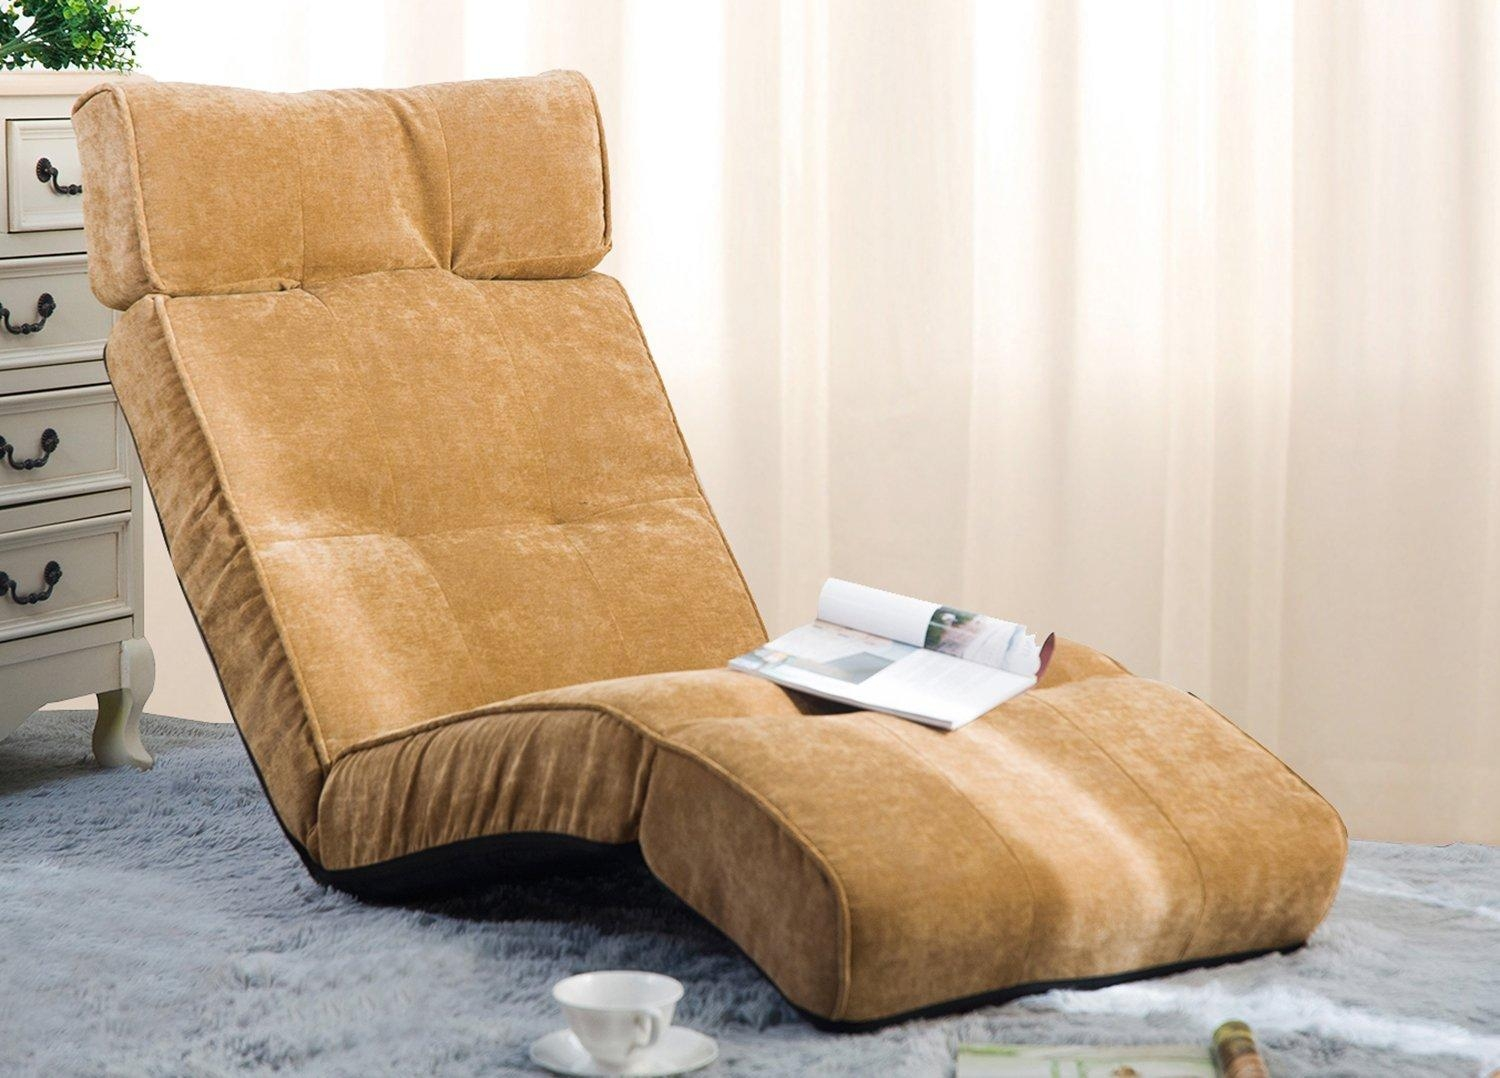 Merax Adjustable Folding Floor Couch Lounger Sofa Chair – Folding Throughout Fold Up Sofa Chairs (Image 16 of 22)